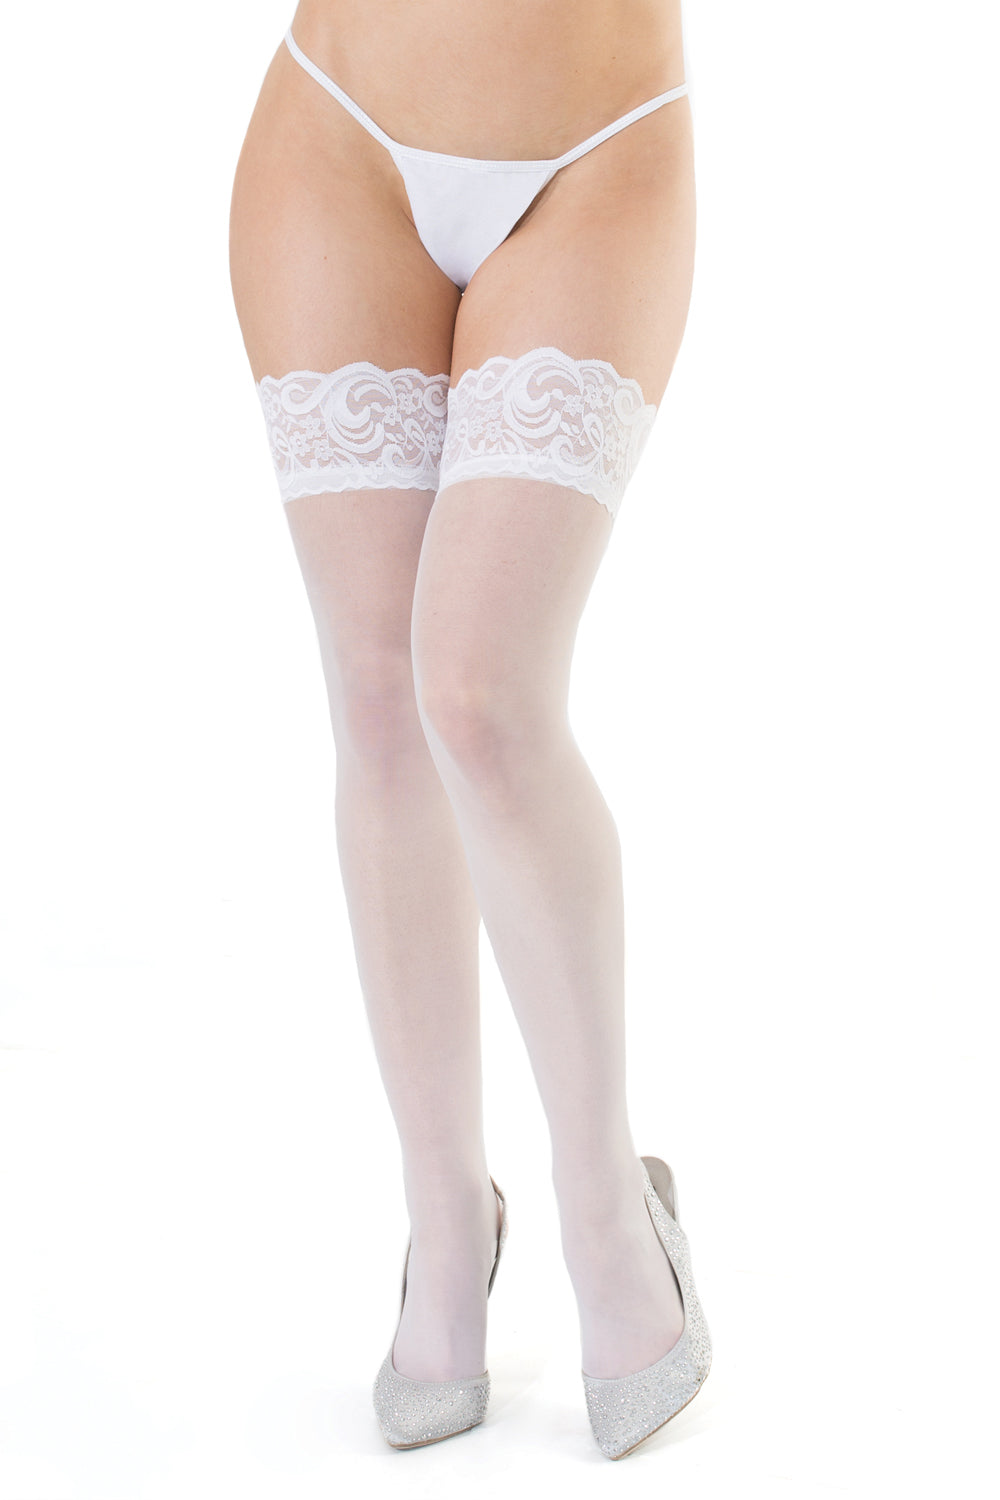 Stay-up Bride to be Stockings